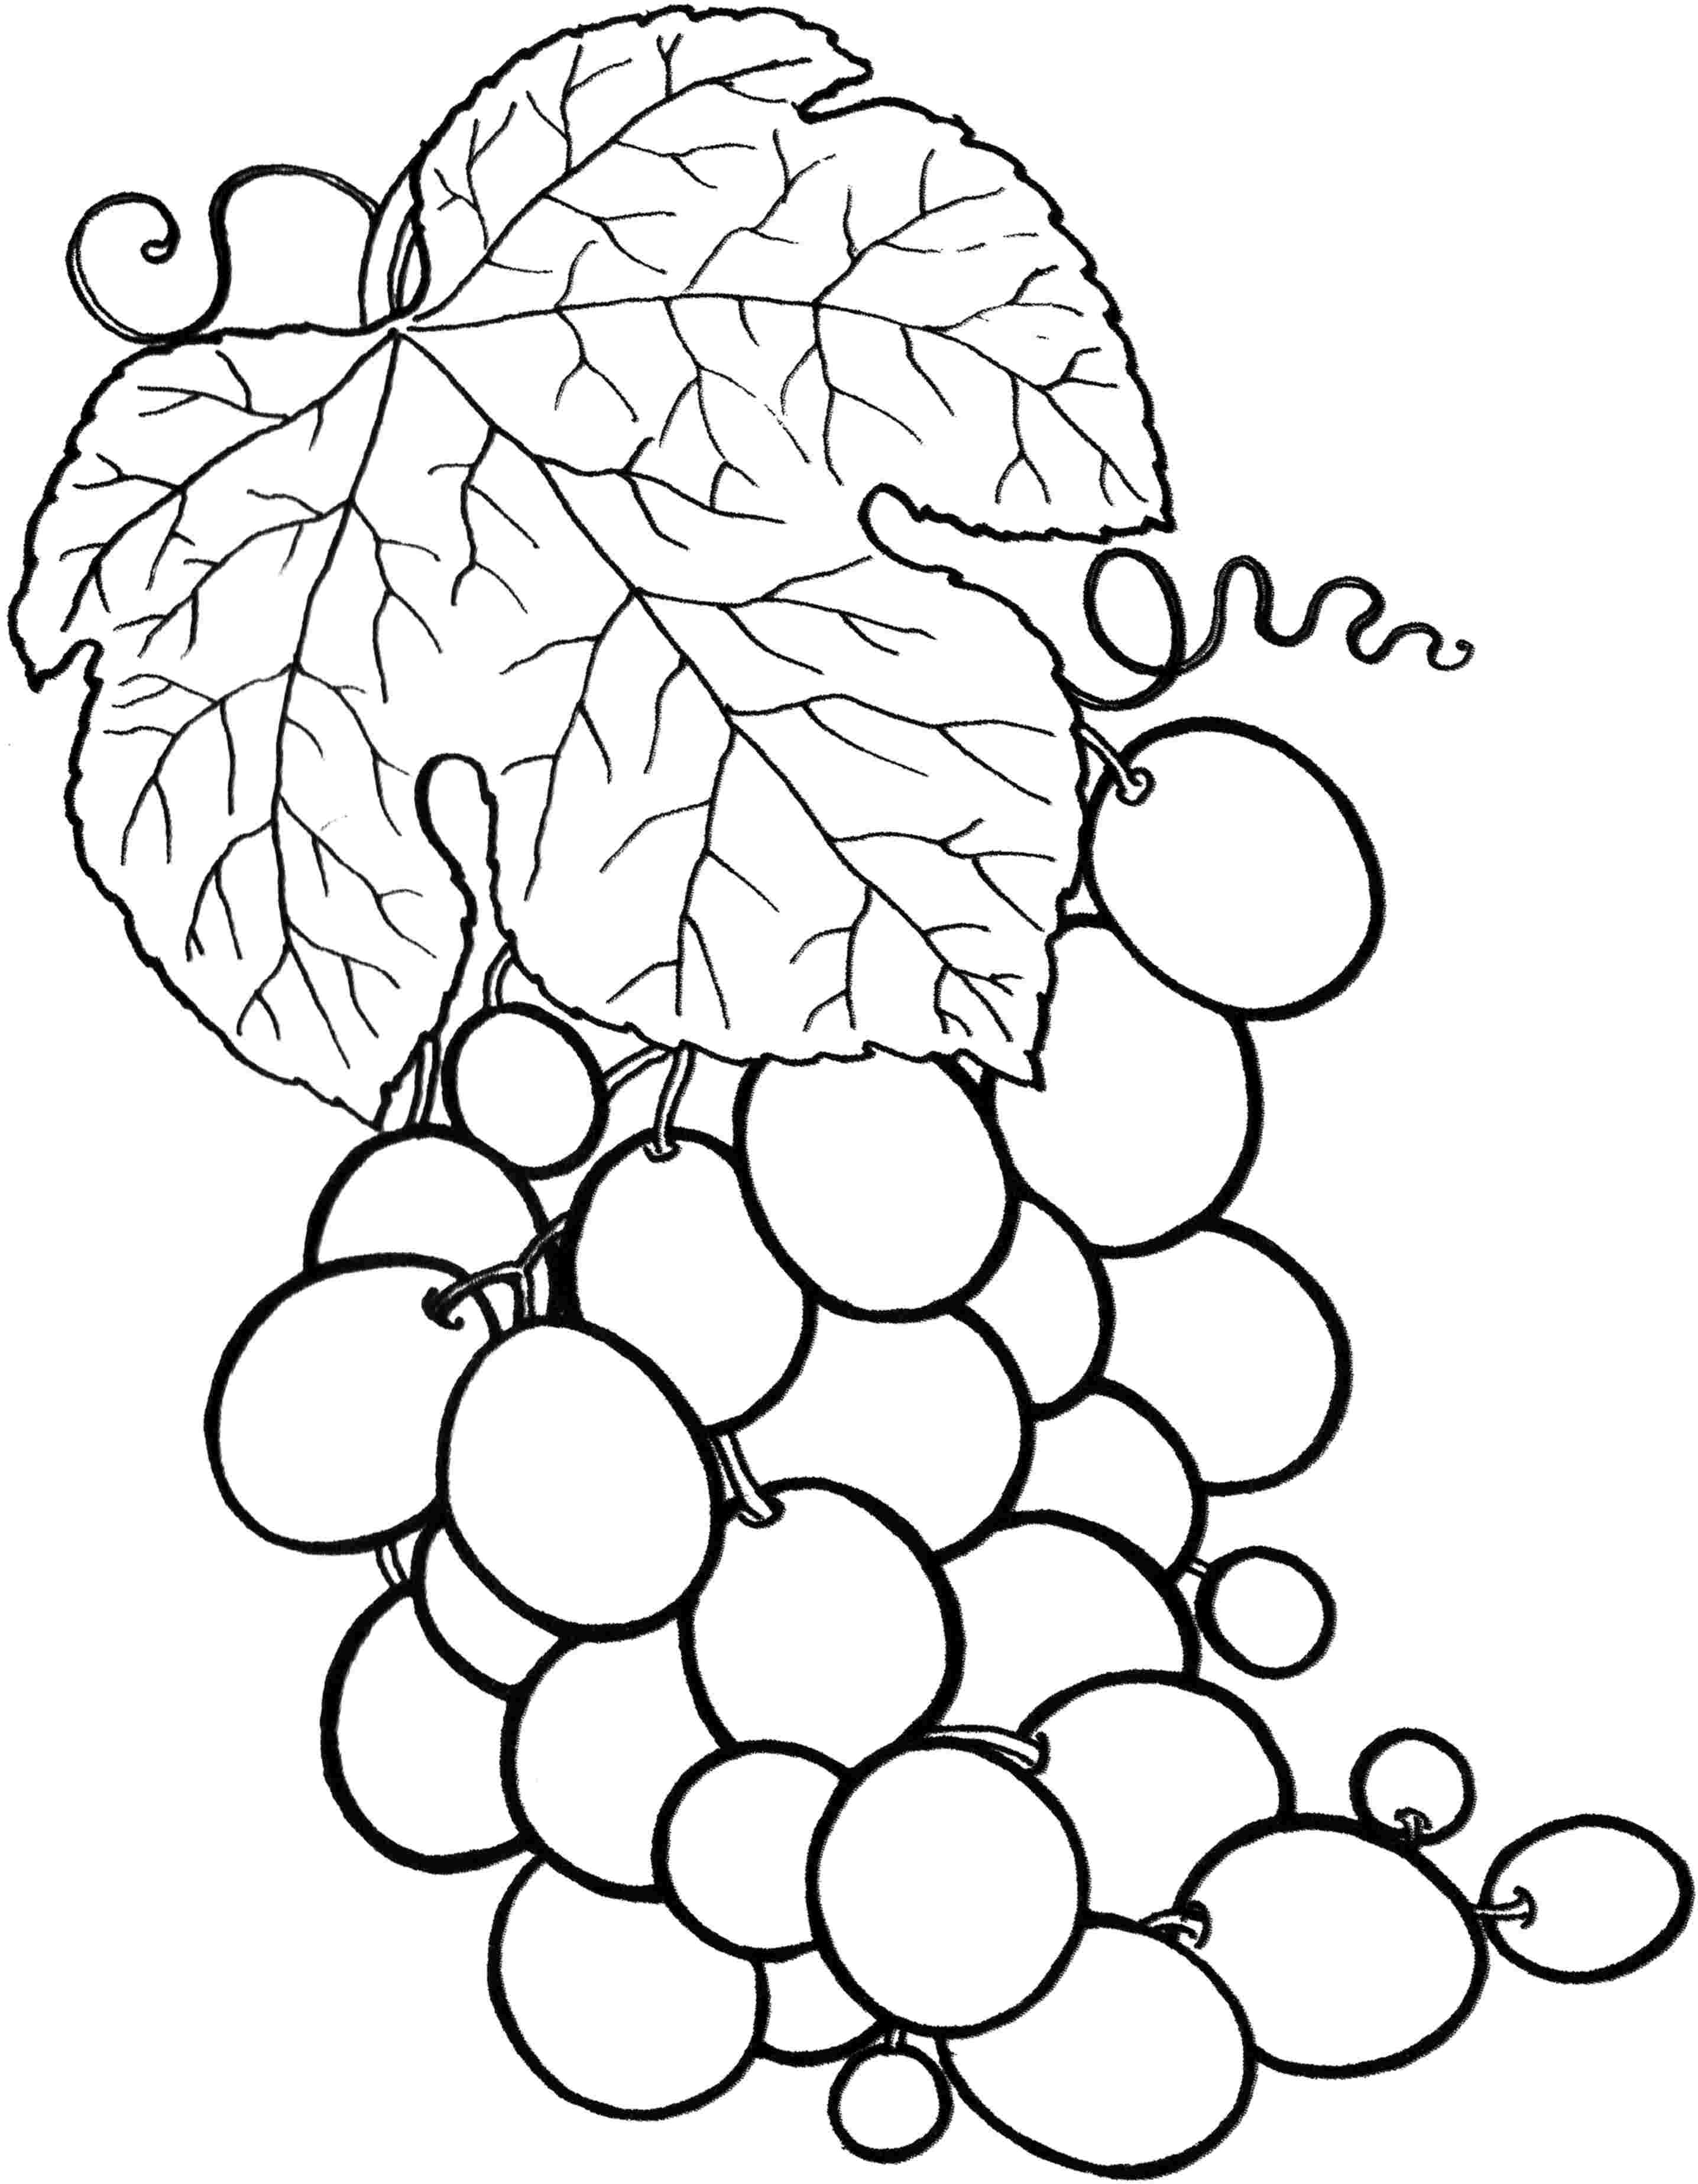 fruit coloring cartoon fruits coloring pages crafts and worksheets for fruit coloring